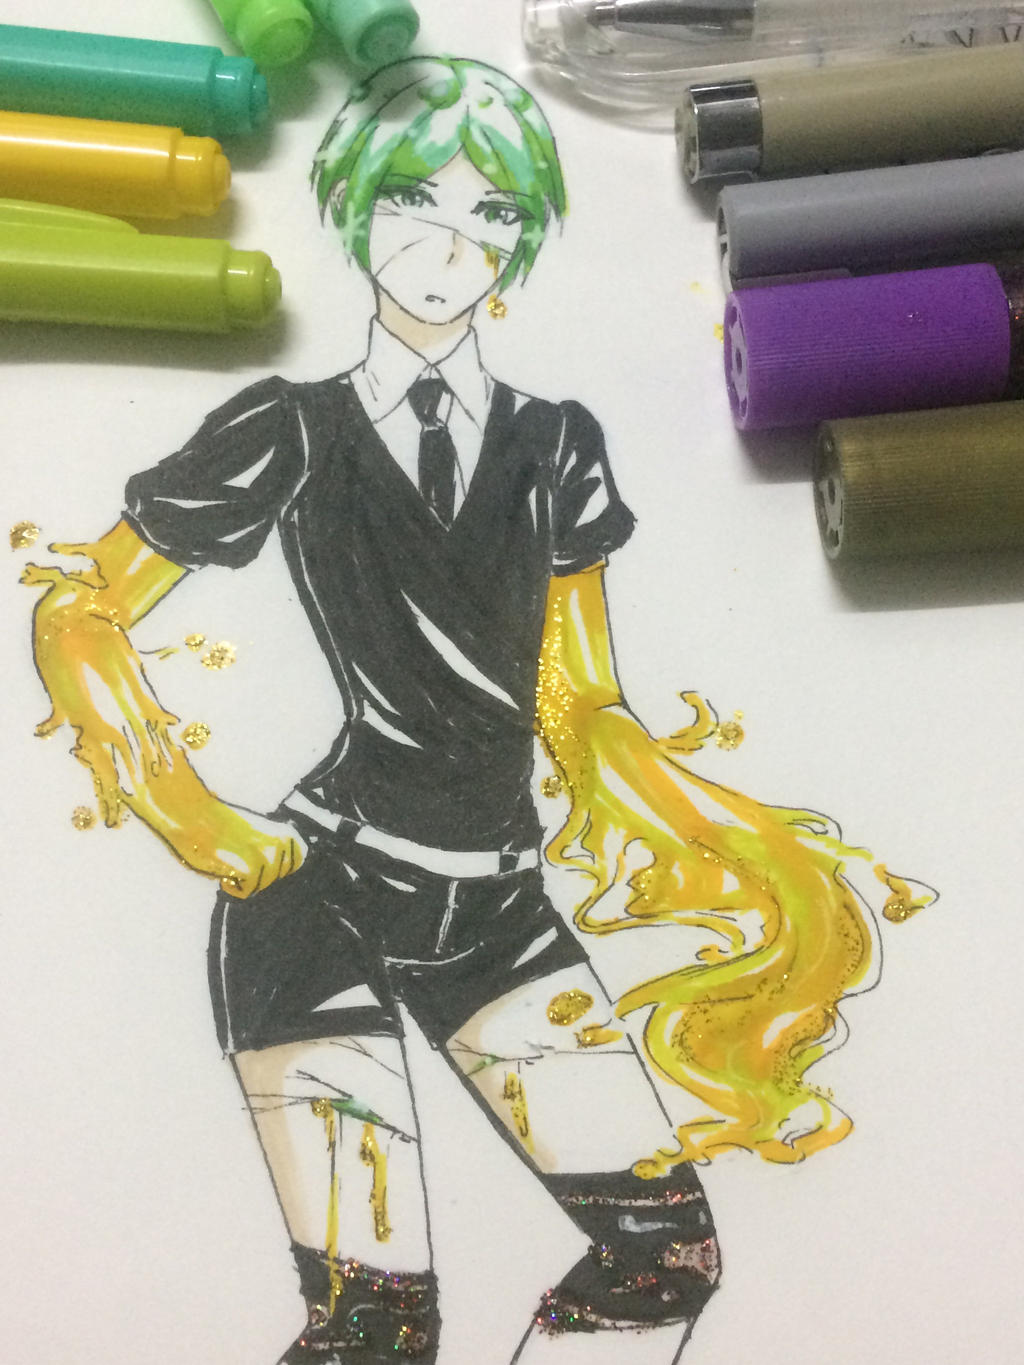 Phosphophyllite [Houseki no kuni] by Kimoichan